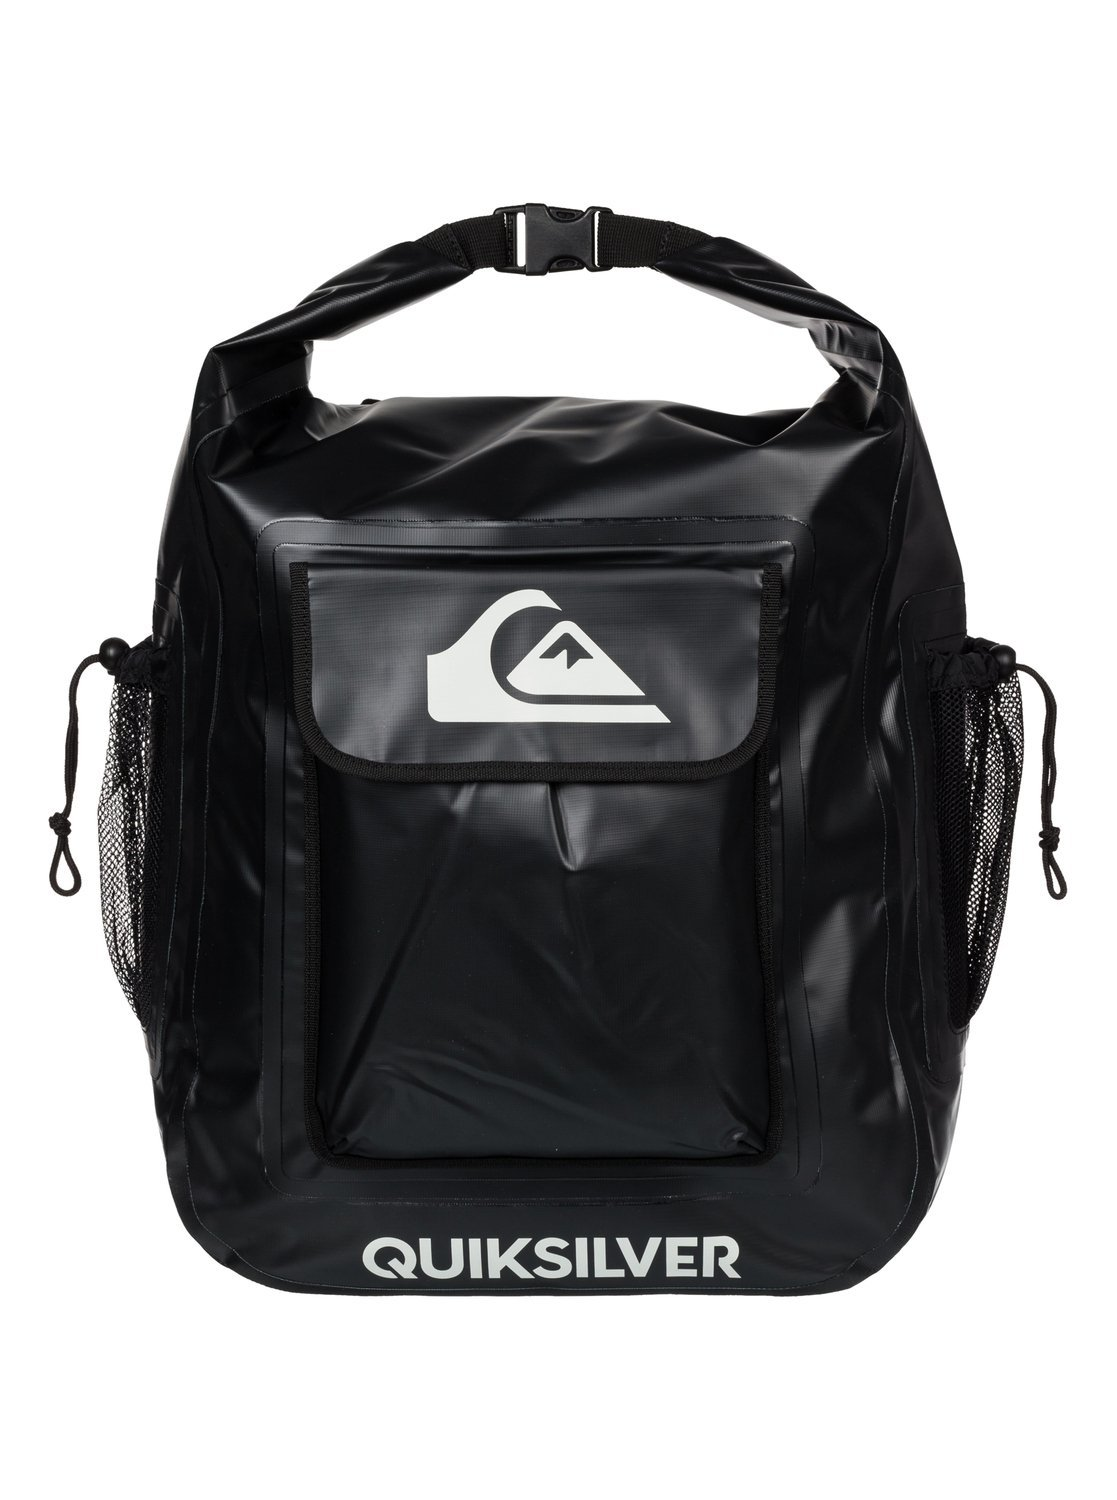 Quiksilver Mens Deluxe Wet Dry - Wetsuit Dry Backpack Black One Size